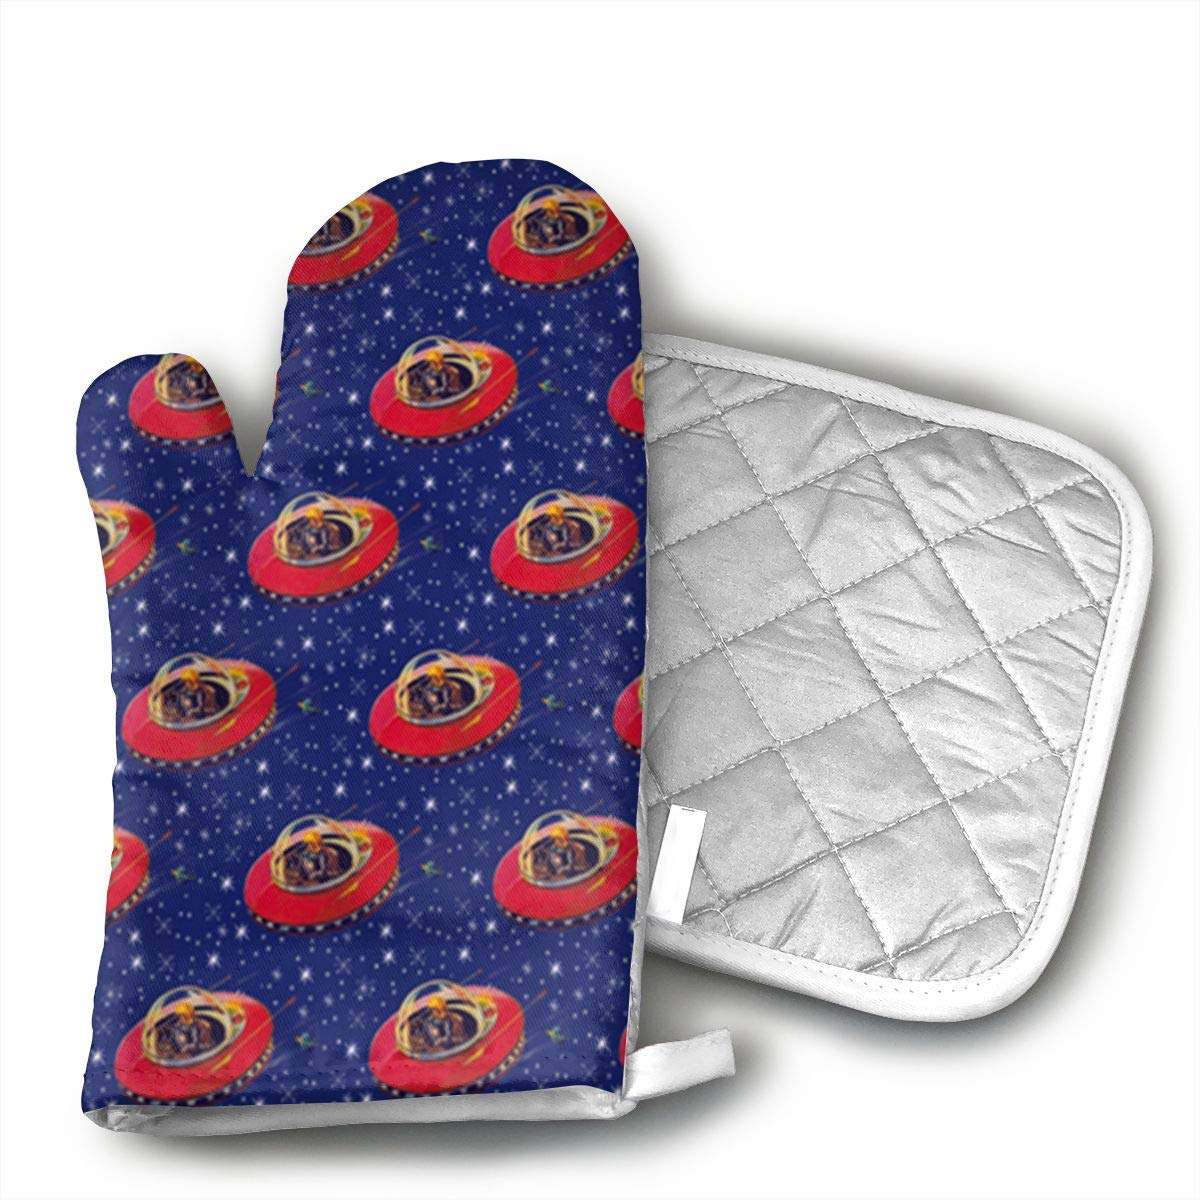 InsulatedMitt59 Superhero Love Tiny But Mighty Pattern Oven Mitts, Non-Slip Silicone Oven Mitts, Extra Long Kitchen Mitts, Heat Resistant to 572¡ãF Kitchen Oven Gloves